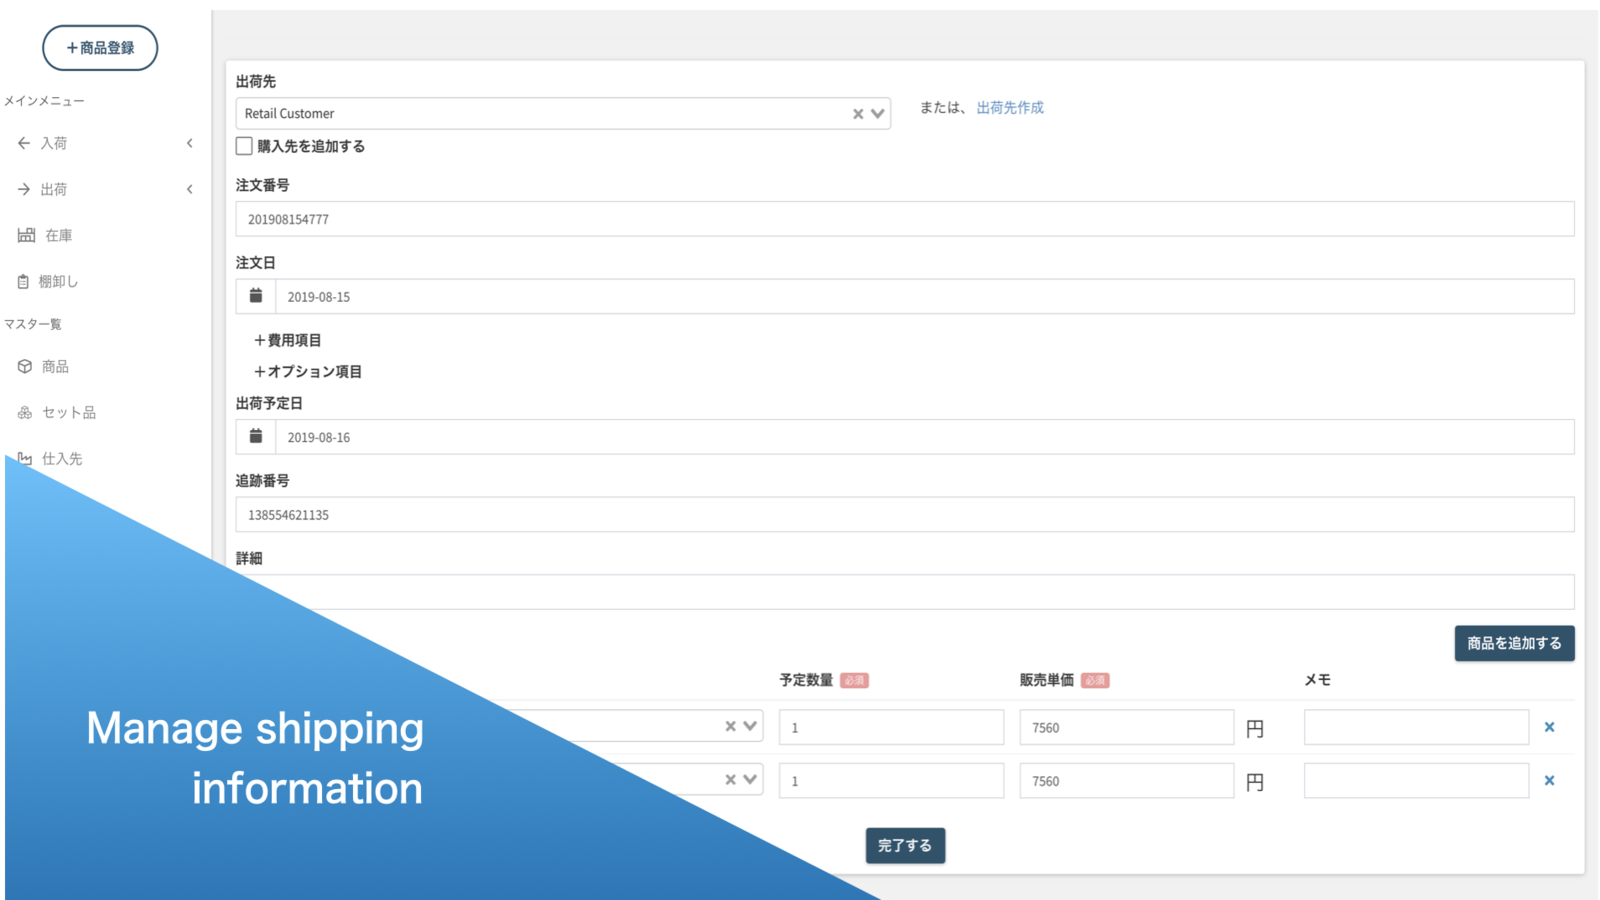 Manage shipping information